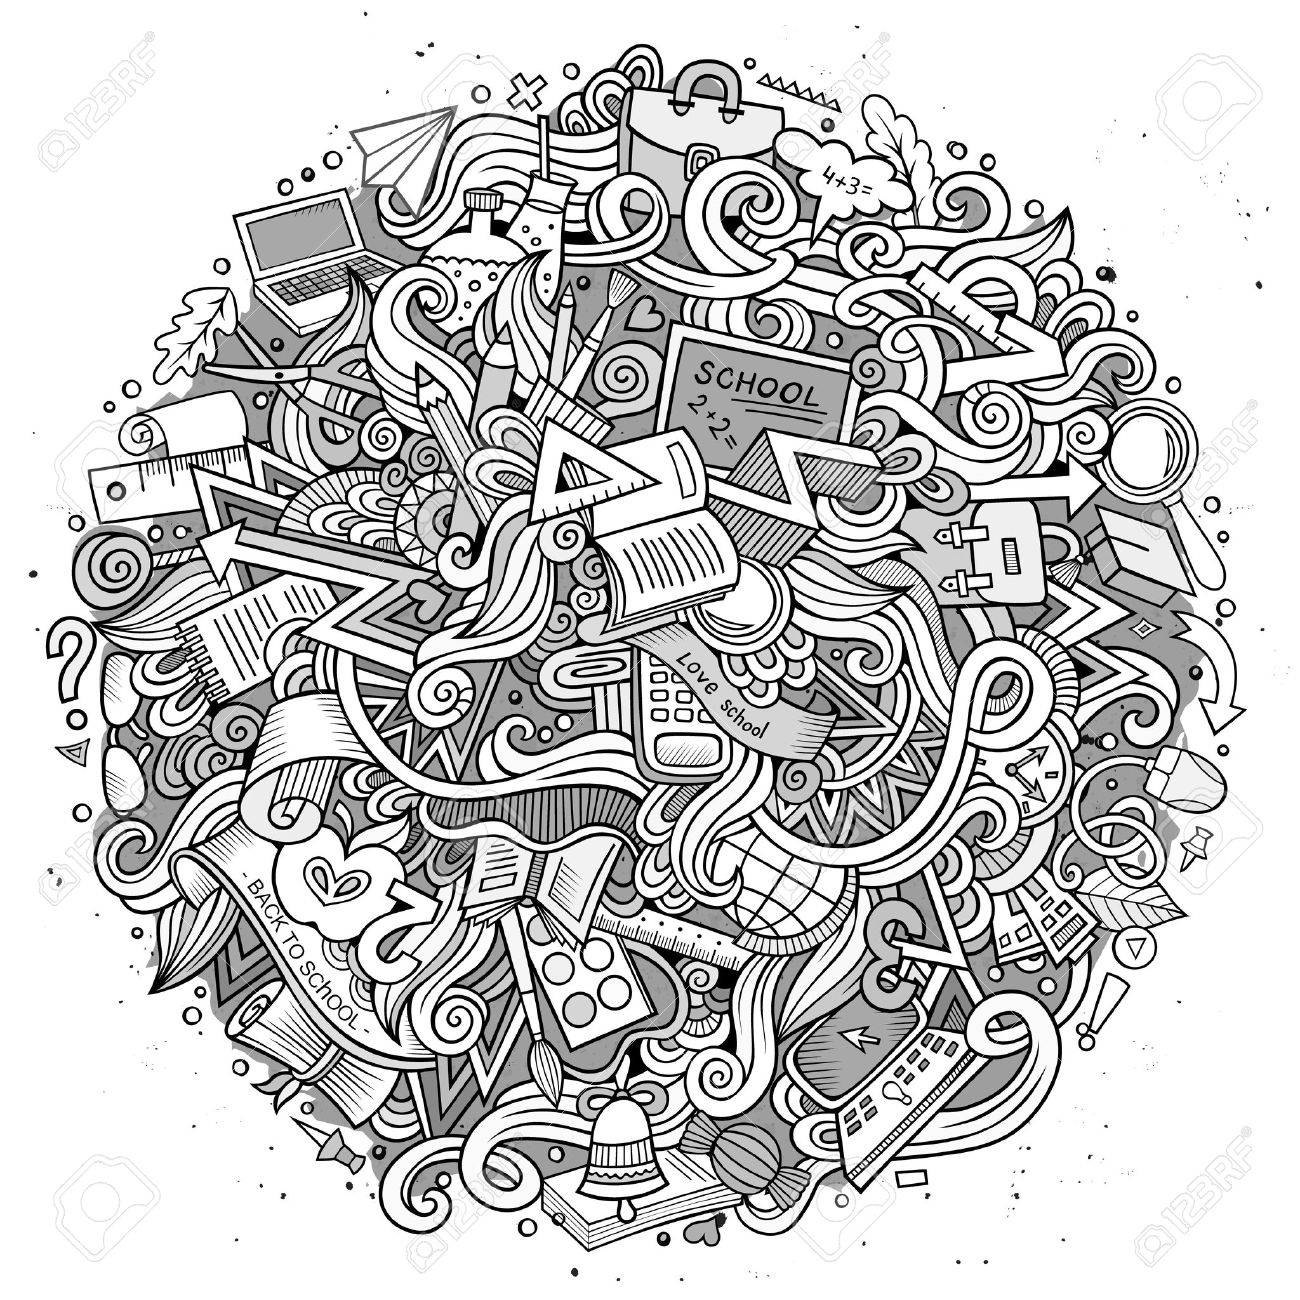 Cartoon cute doodles hand drawn School illustration. Line art detailed, with lots of objects background. Funny vector artwork. Sketchy picture with education theme items. - 62529154